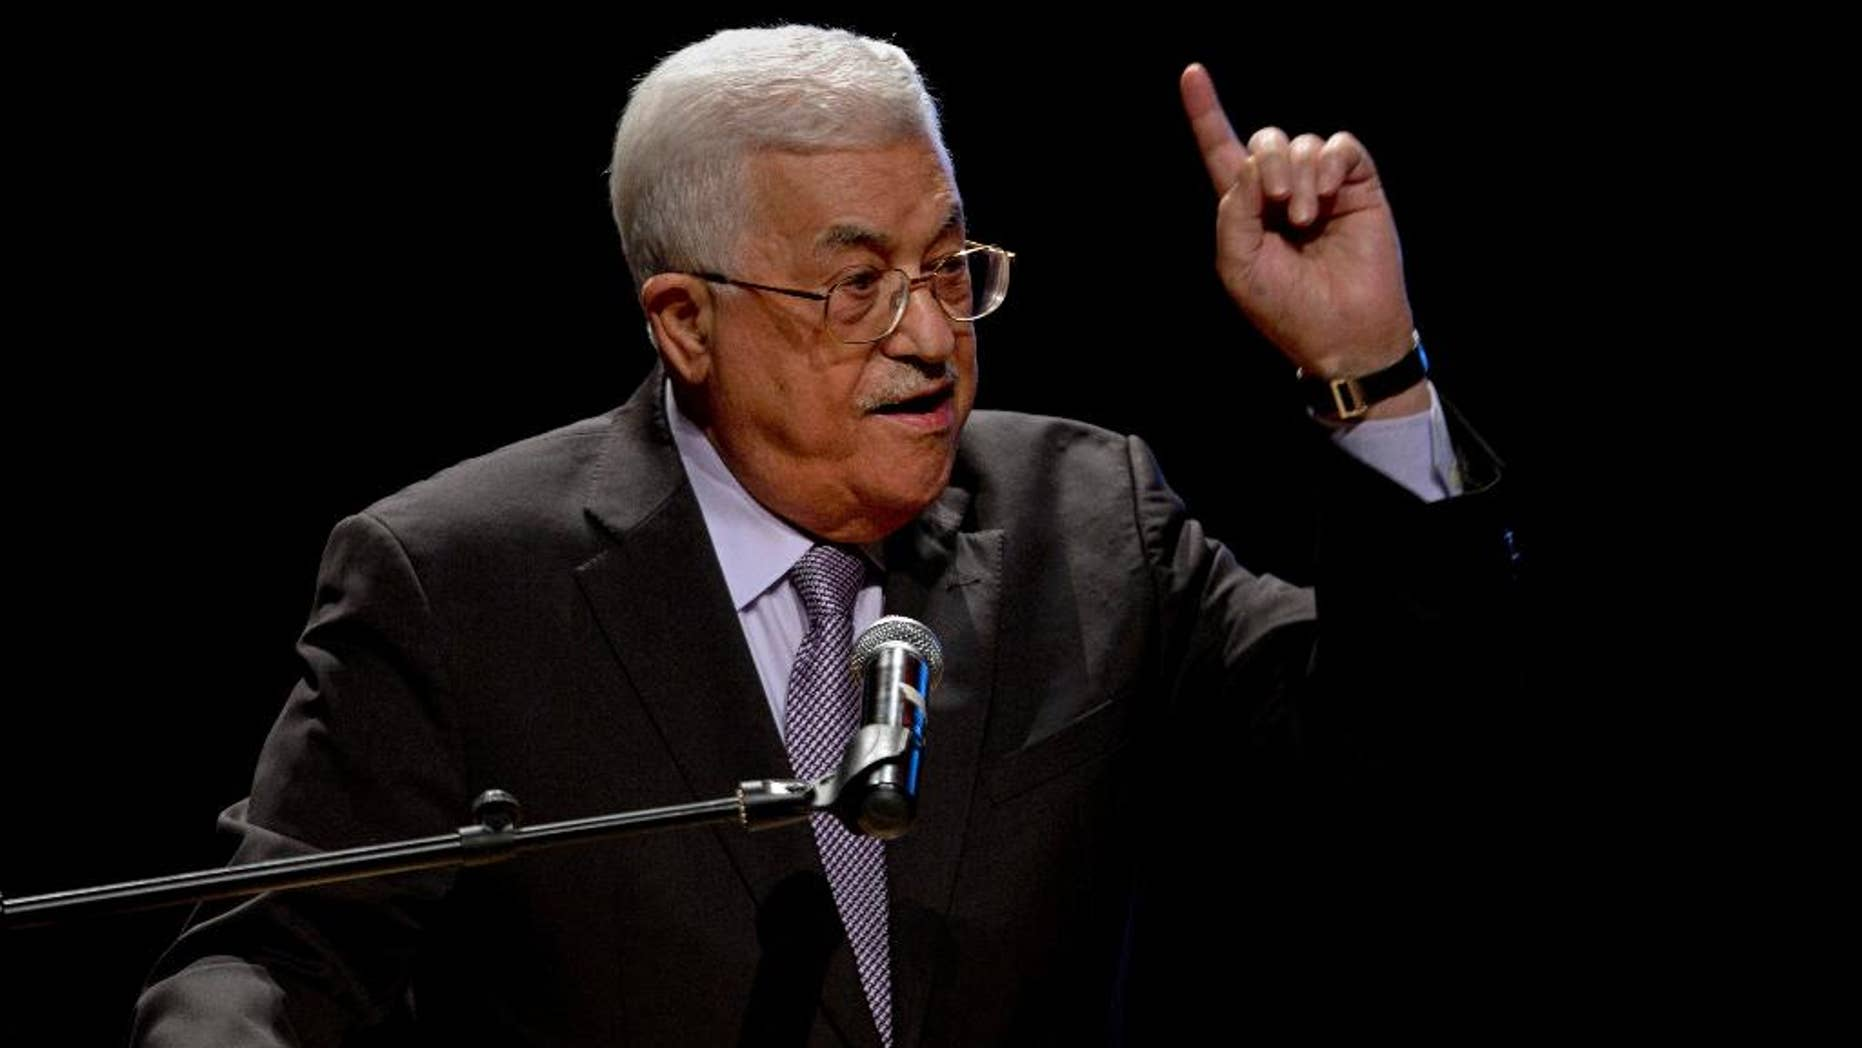 """FILE -- In this Oct. 1, 2016 file photo, Palestinian President Mahmoud Abbas, speaks during a conference in the West Bank City of Bethlehem. Abbas told Palestinian diplomats in Bahrain on Wednesday, April 12, 2017, that  he will take """"unprecedented steps"""" to end the political division between his West Bank-based autonomy government and the Hamas-run Gaza Strip. Measures will likely include more financial pressure on Gaza, after he recently slashed salaries of 60,000 ex-civil servants and members of the security forces by one-third. (AP Photo/Majdi Mohammed, File)"""